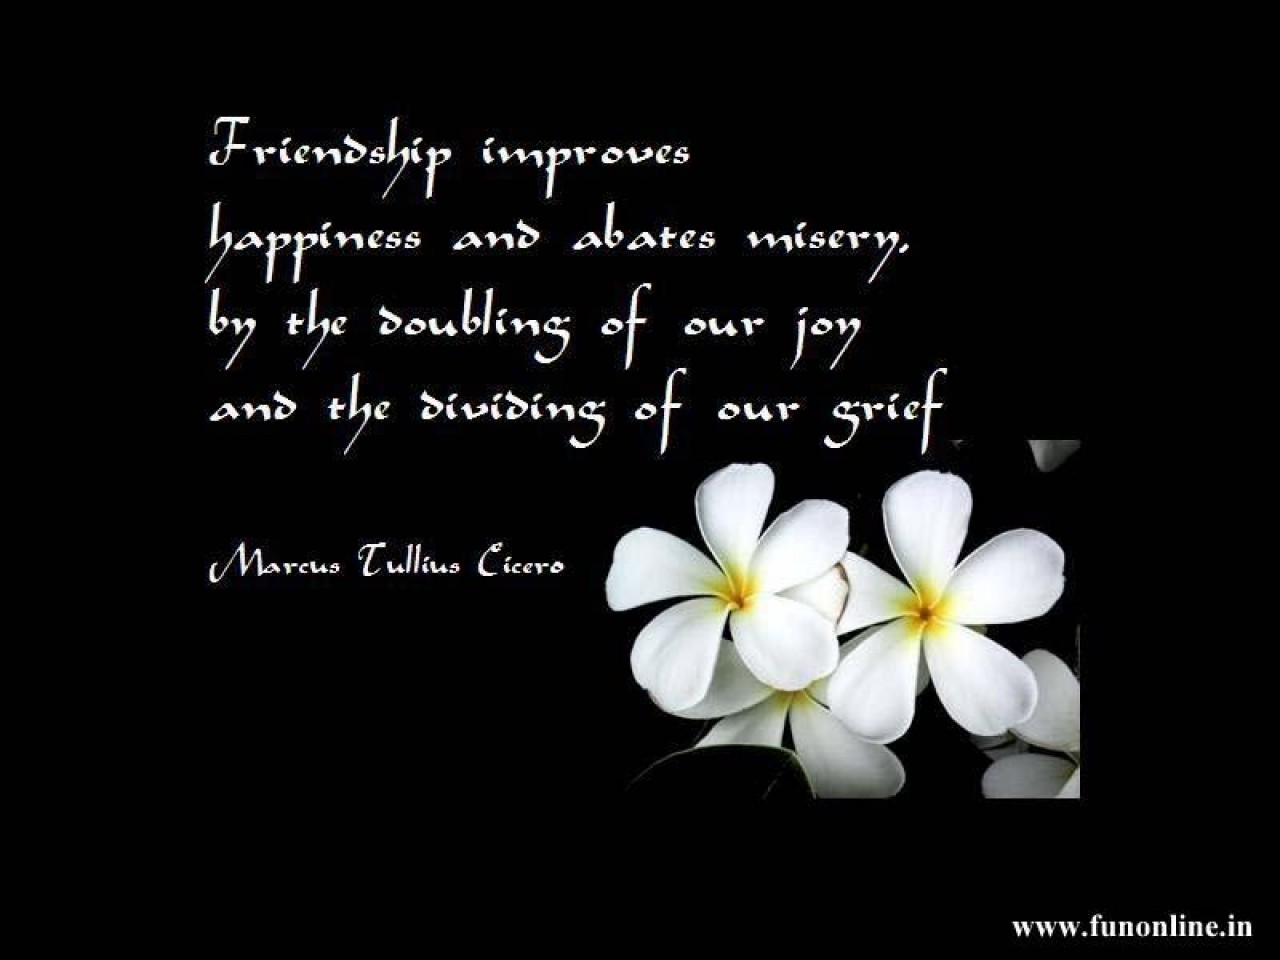 Good Quotes About Love And Friendship Famous Friendship Quotes And Saying With Wishes Love Pictures